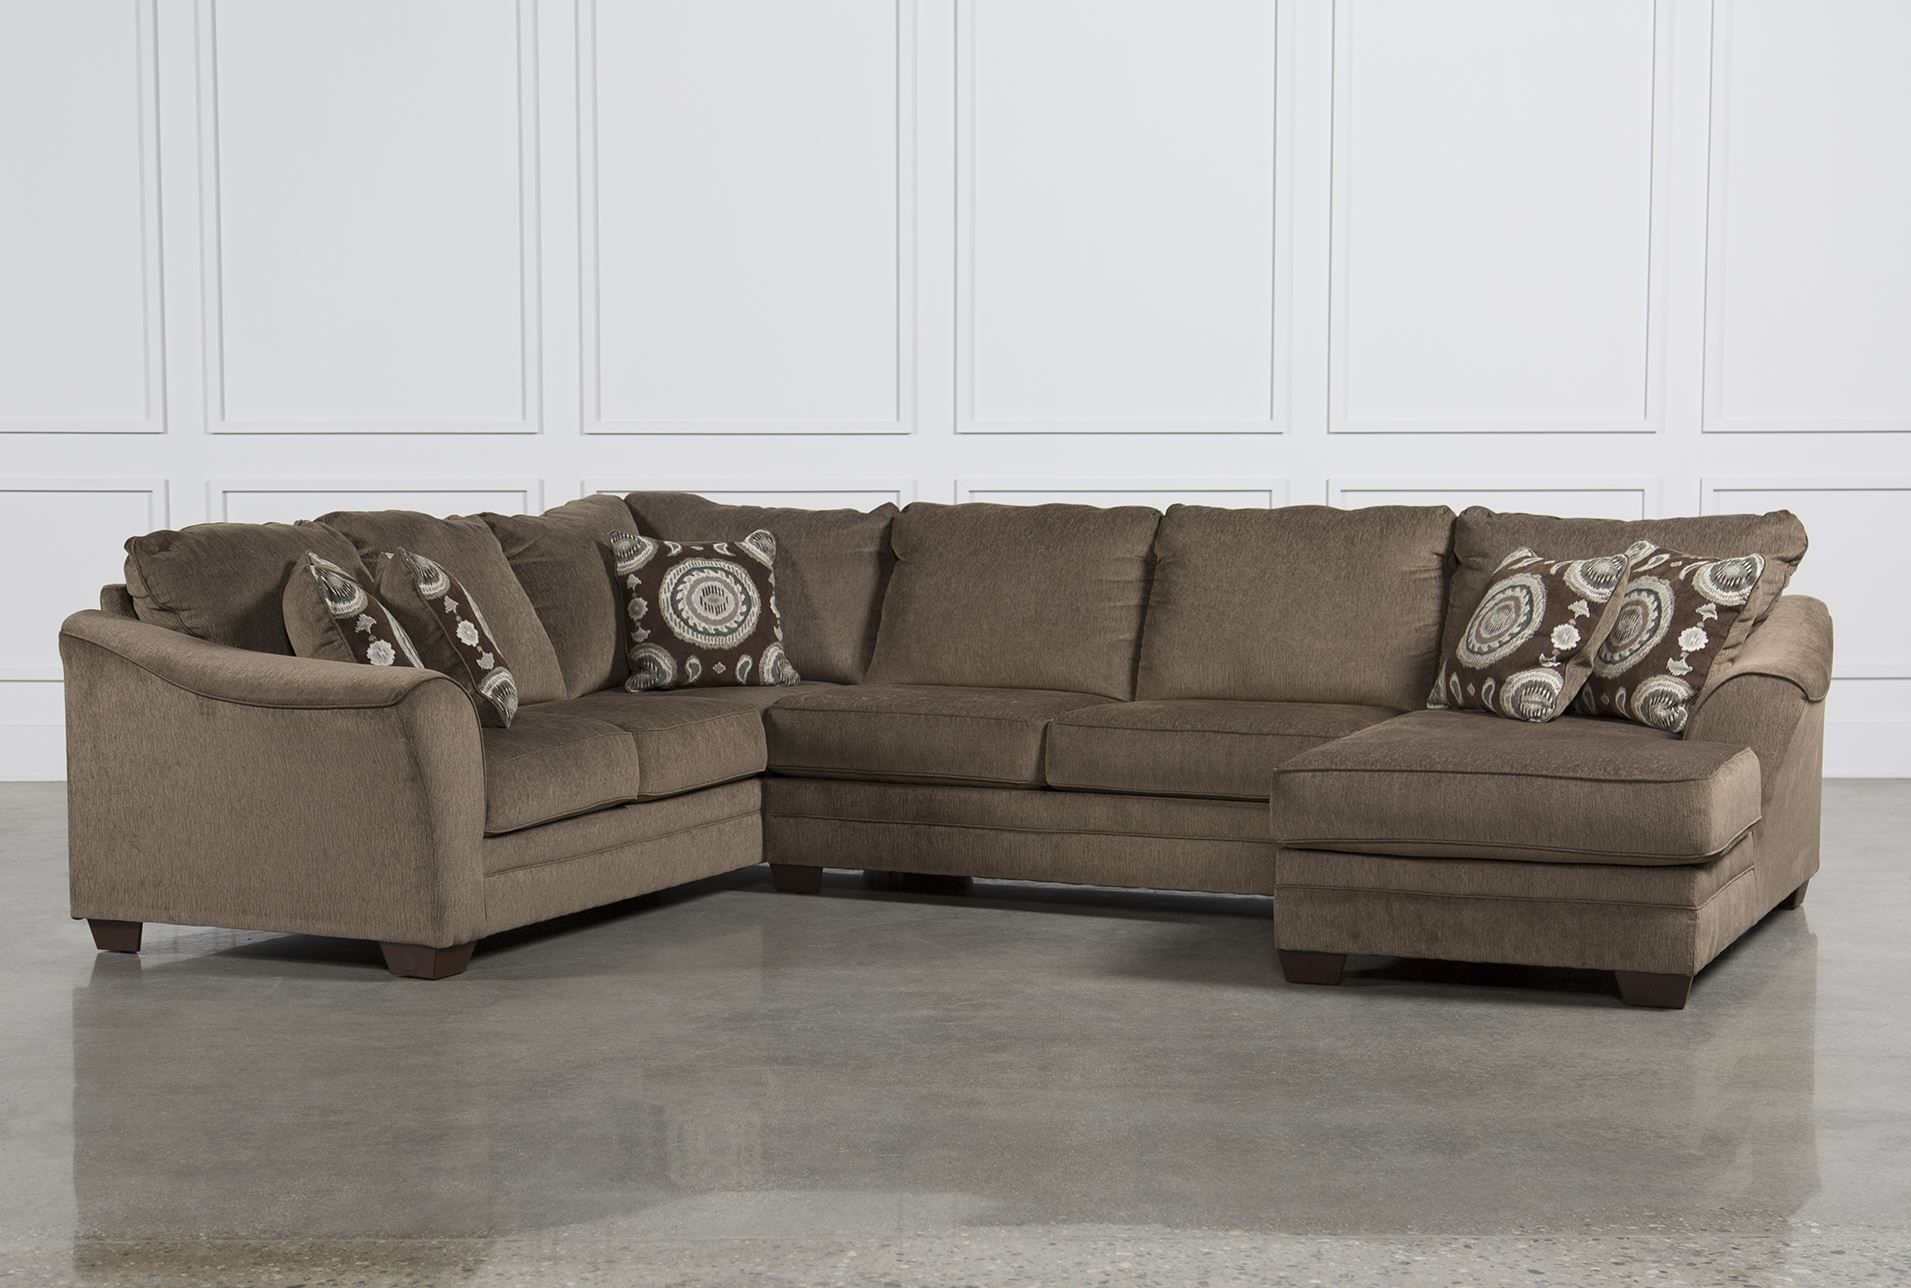 Cosmo Marble 3 Piece Sectional W/raf Chaise | Family Room For Sierra Foam Ii 3 Piece Sectionals (Image 13 of 25)